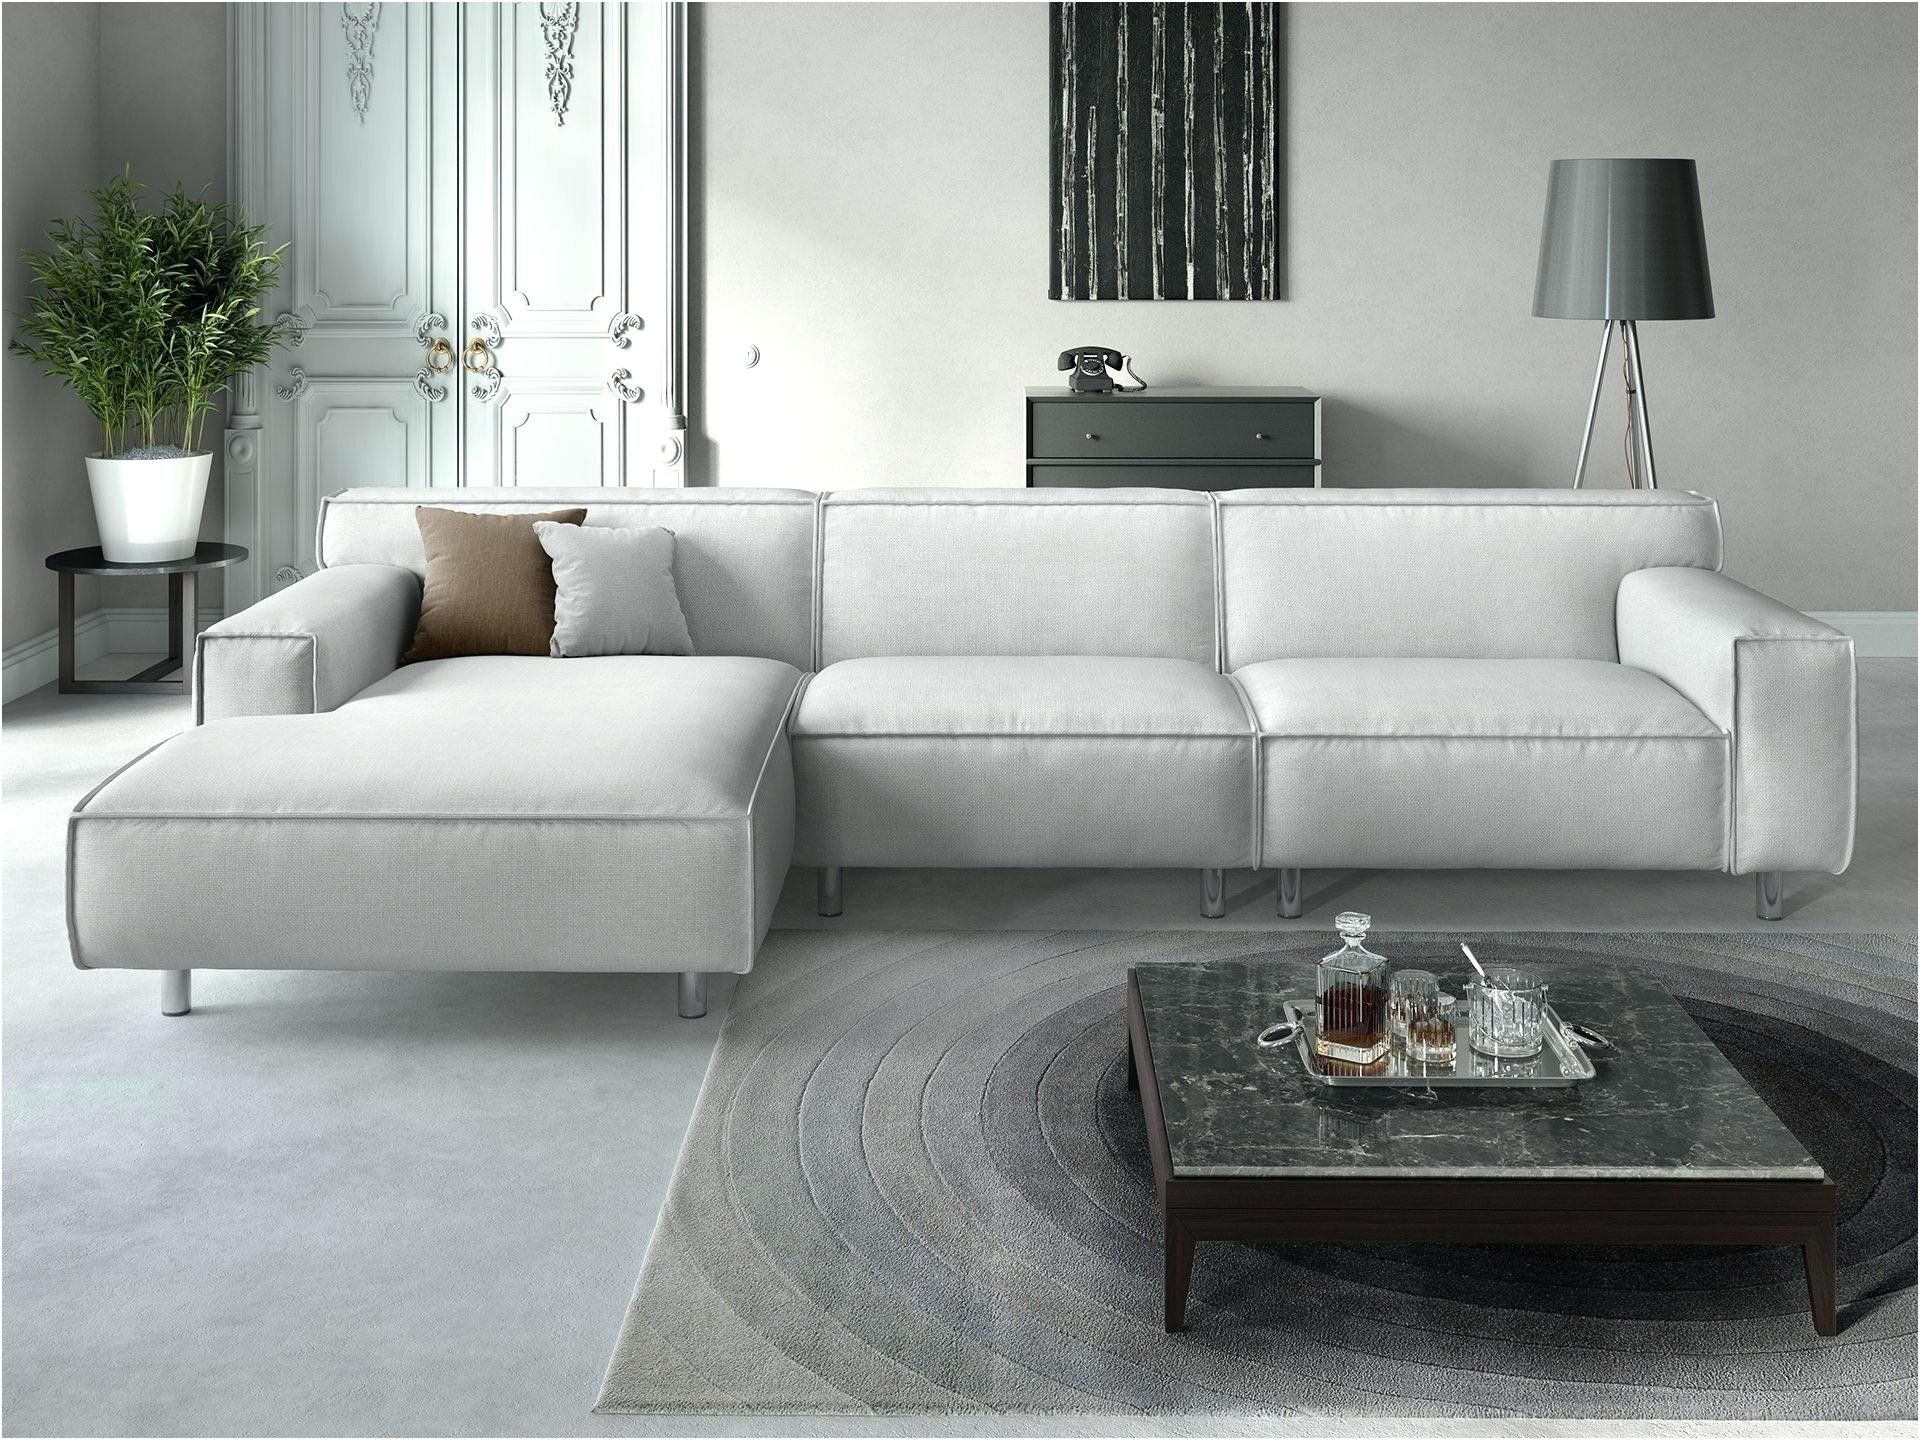 Beeindruckend Sofa L Form Klein Check More At Https